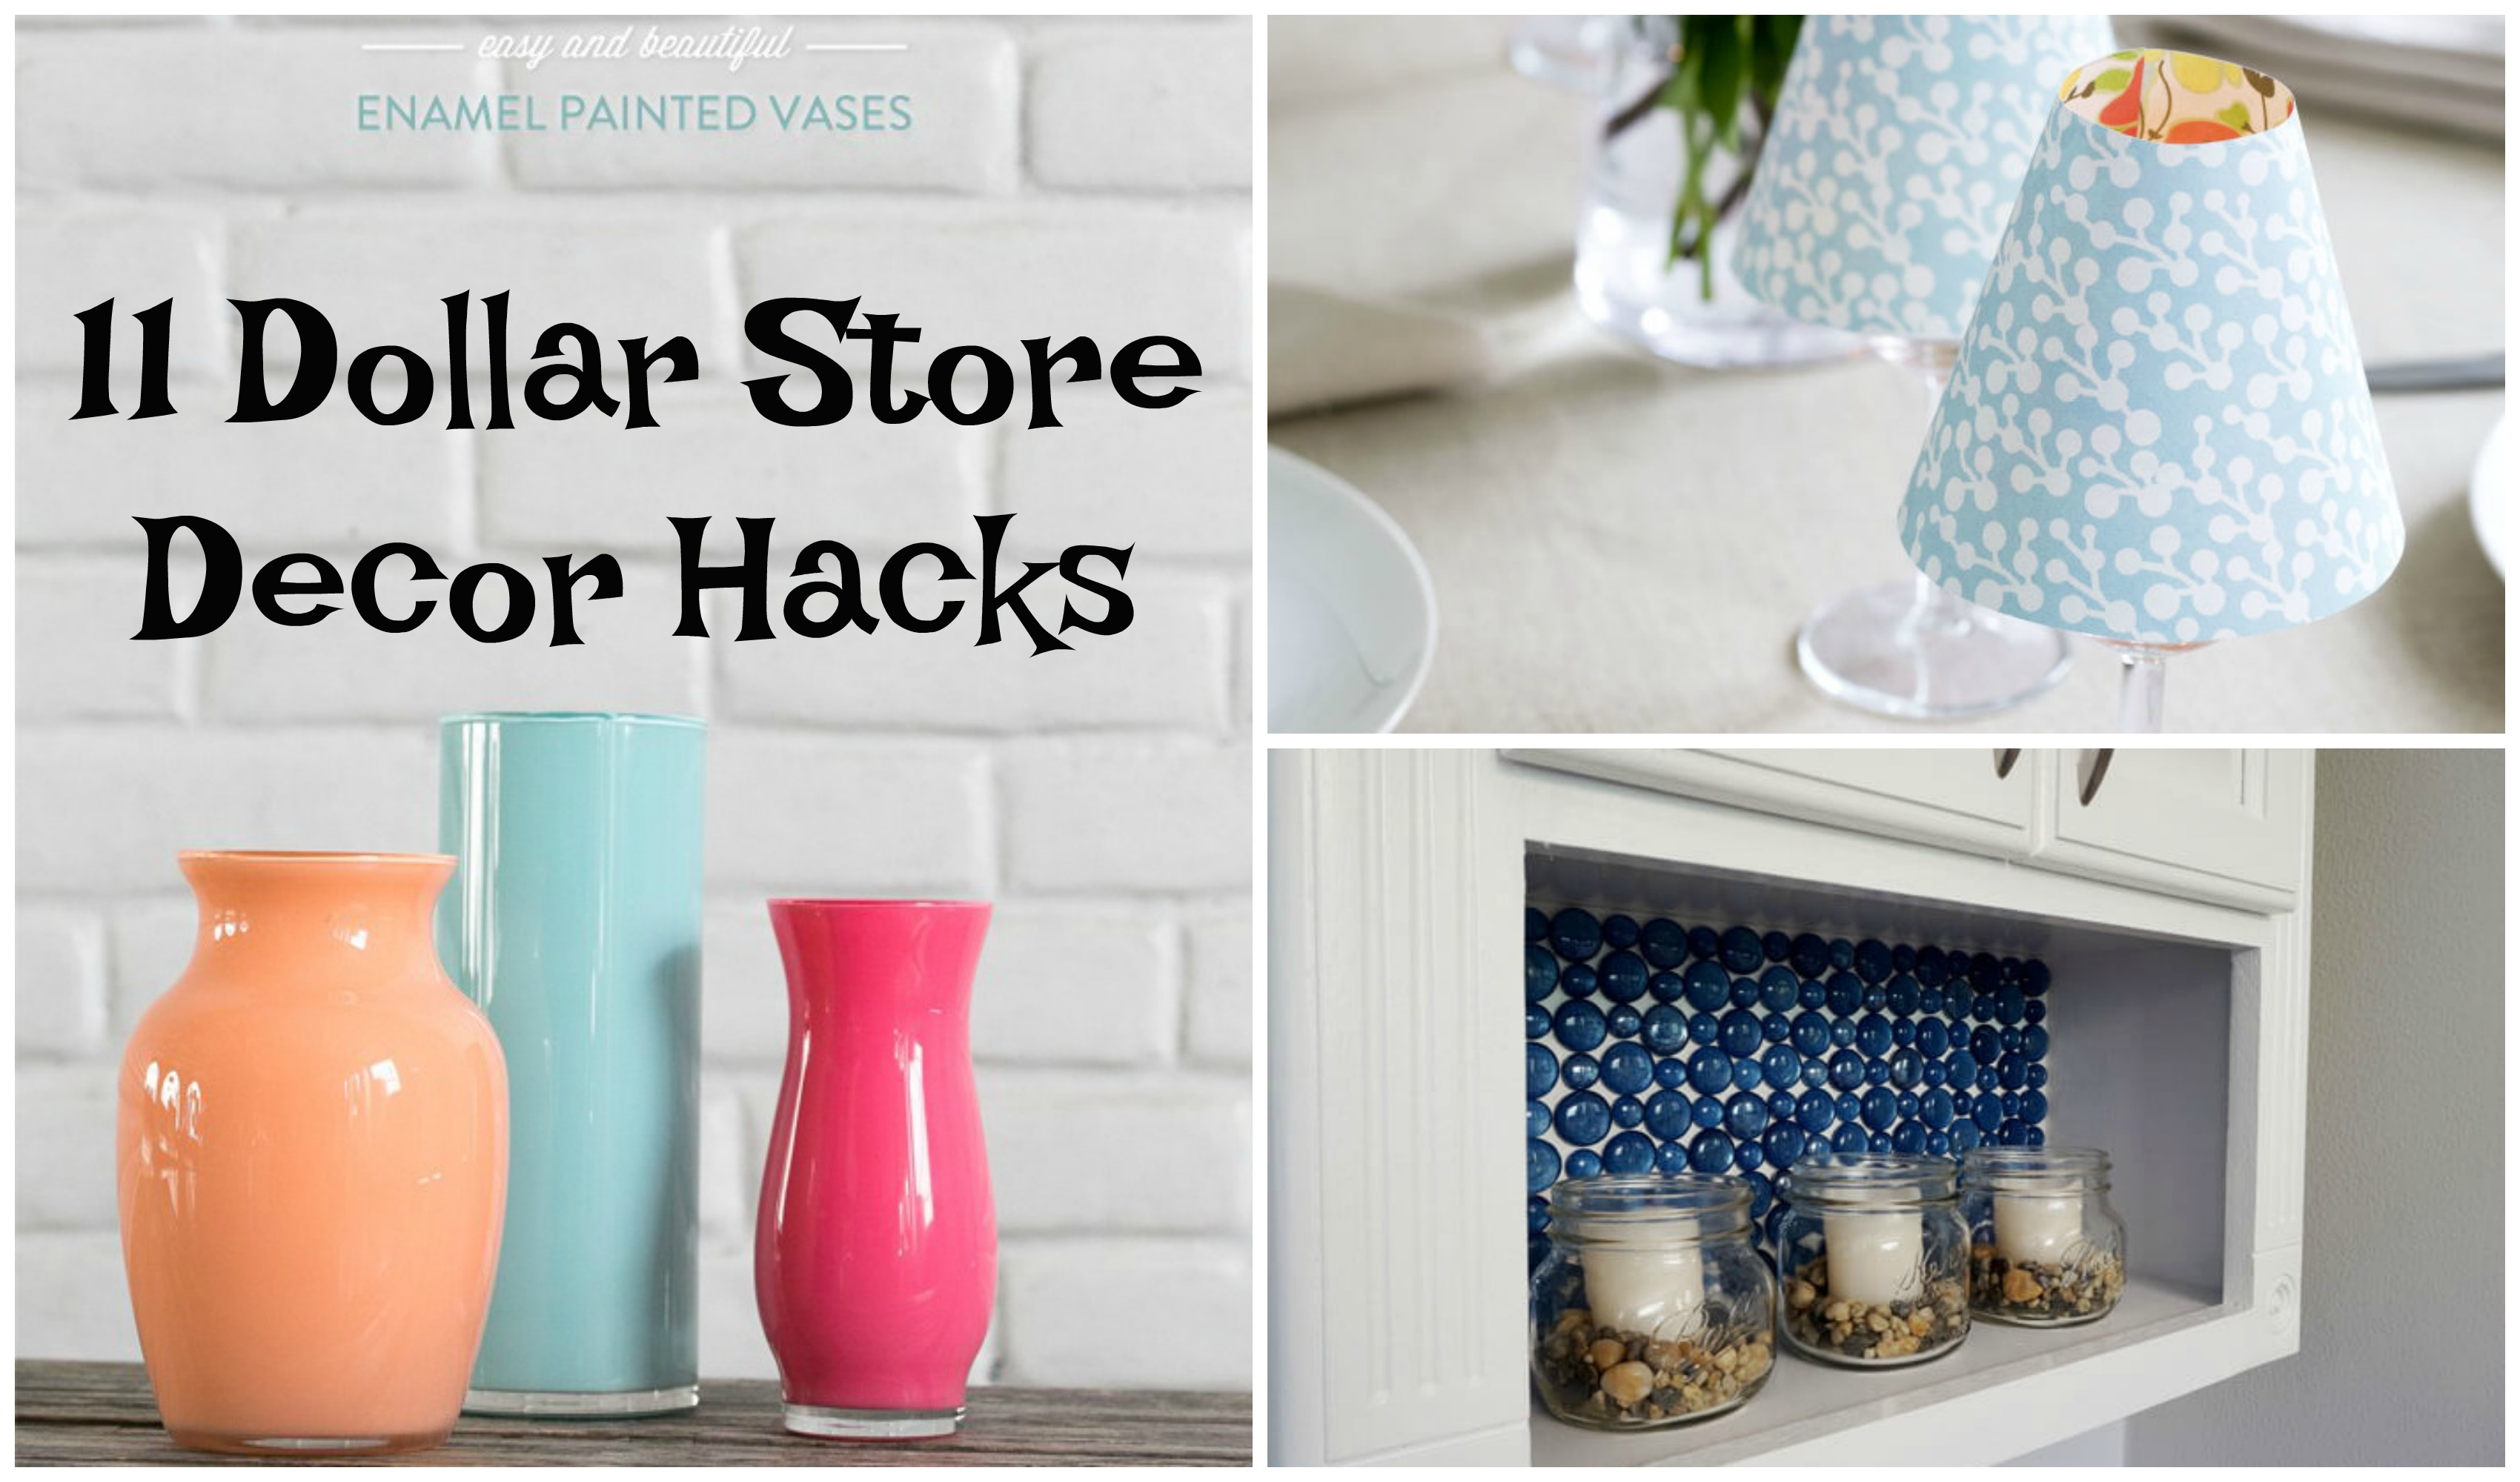 Best 11 Dollar Store Decor Hacks To Spruce Up Your Home This Month